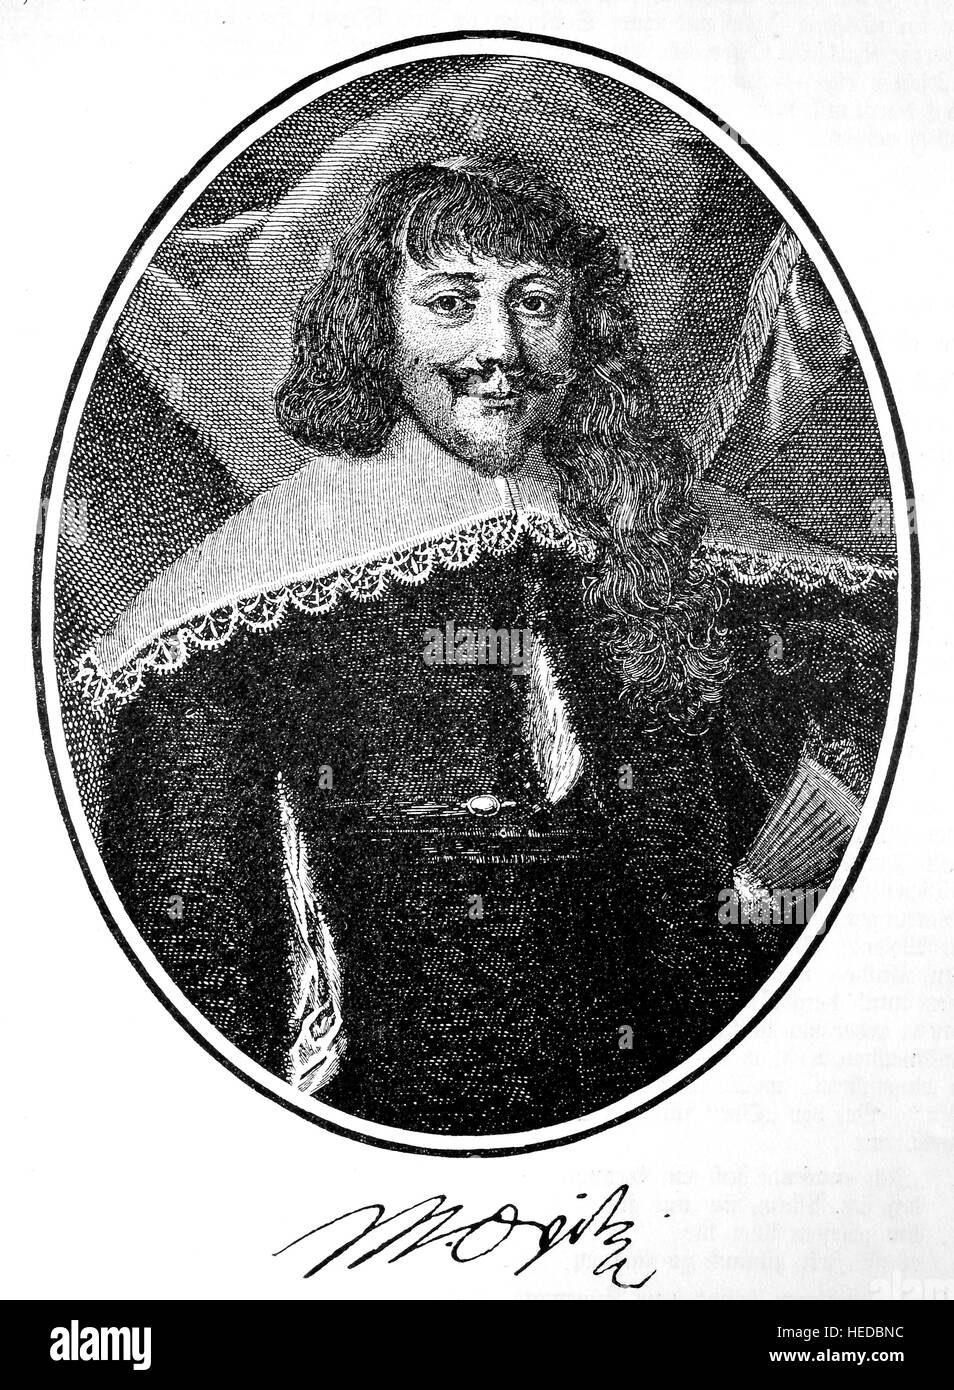 Martin Opitz von Boberfeld, 1597-1639, a German poet, from a woodcut of 1880, digital improved Stock Photo